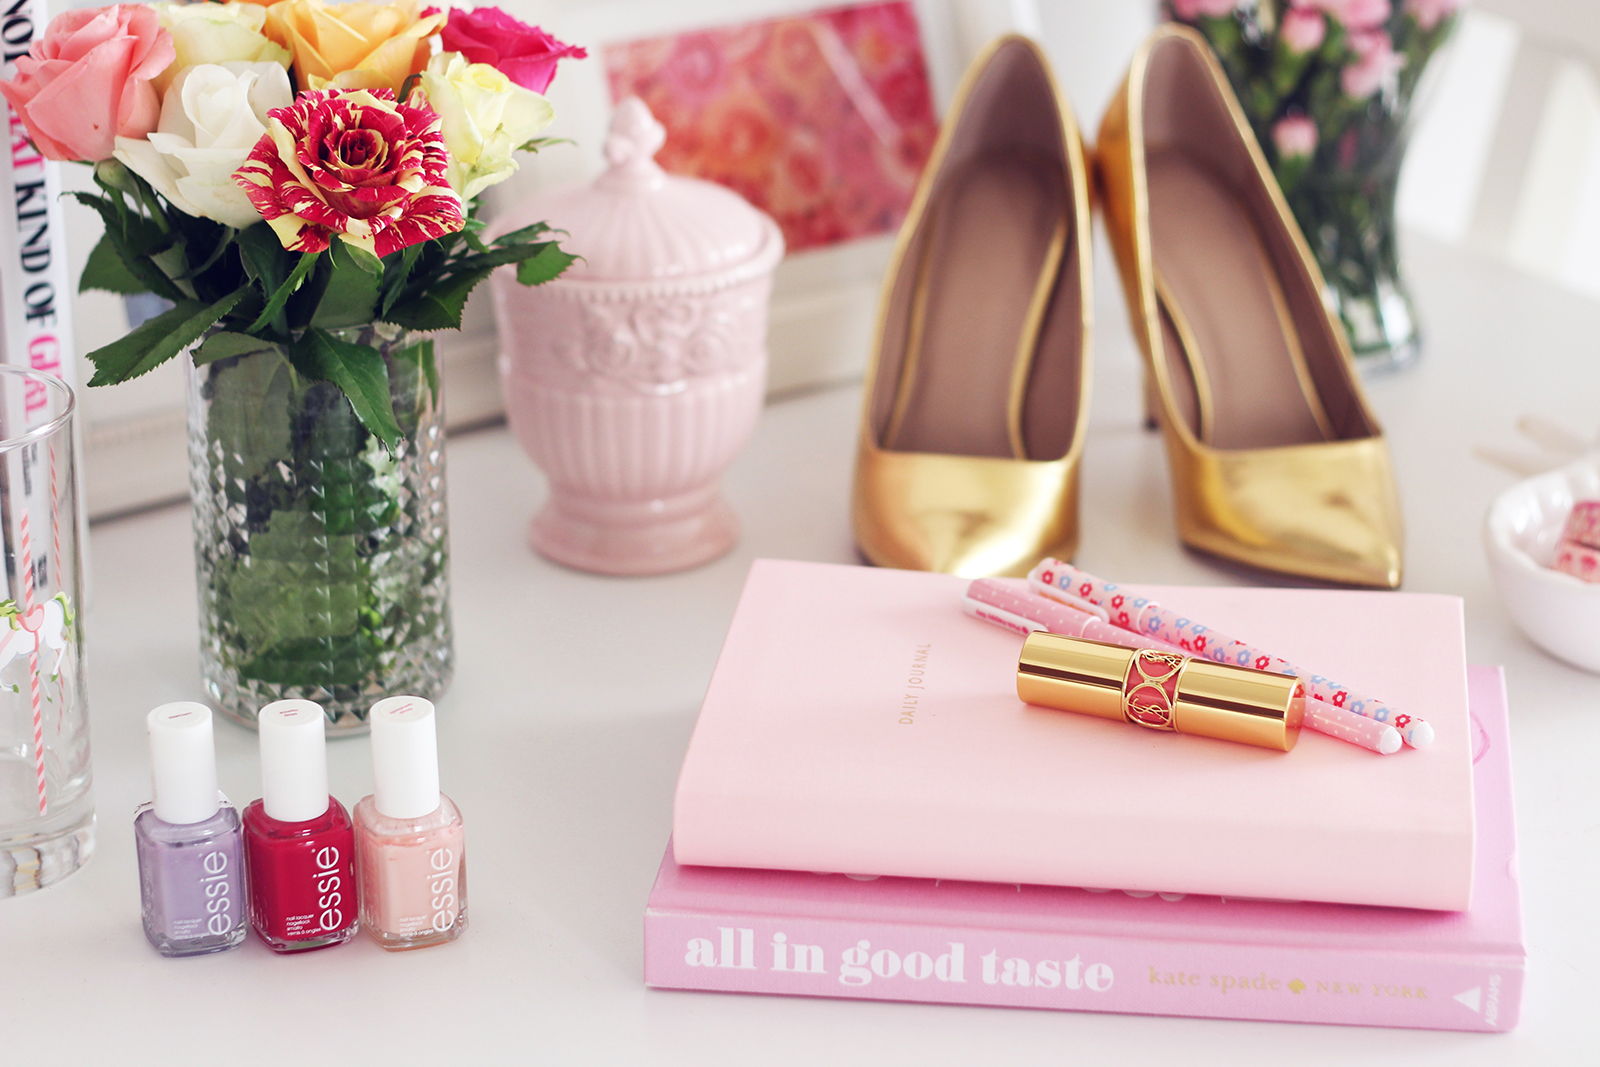 some-lovely-items-about-a-closet-5